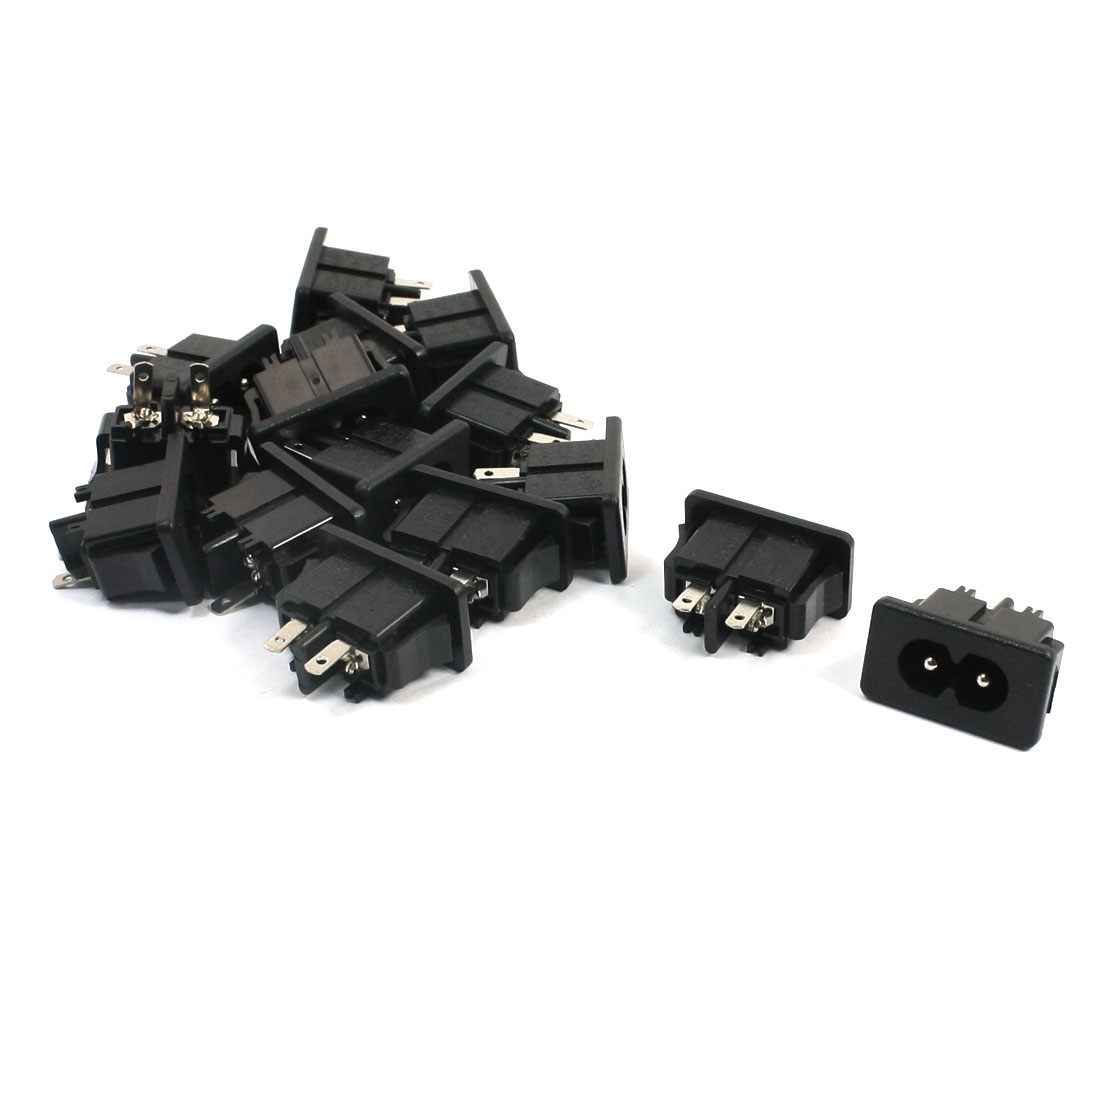 15Pcs Two Soldering Pins Power Supply Snap In Type IEC C8 Coupler Shotgun Connector Adapter Male Plug AC 250V 2.5A